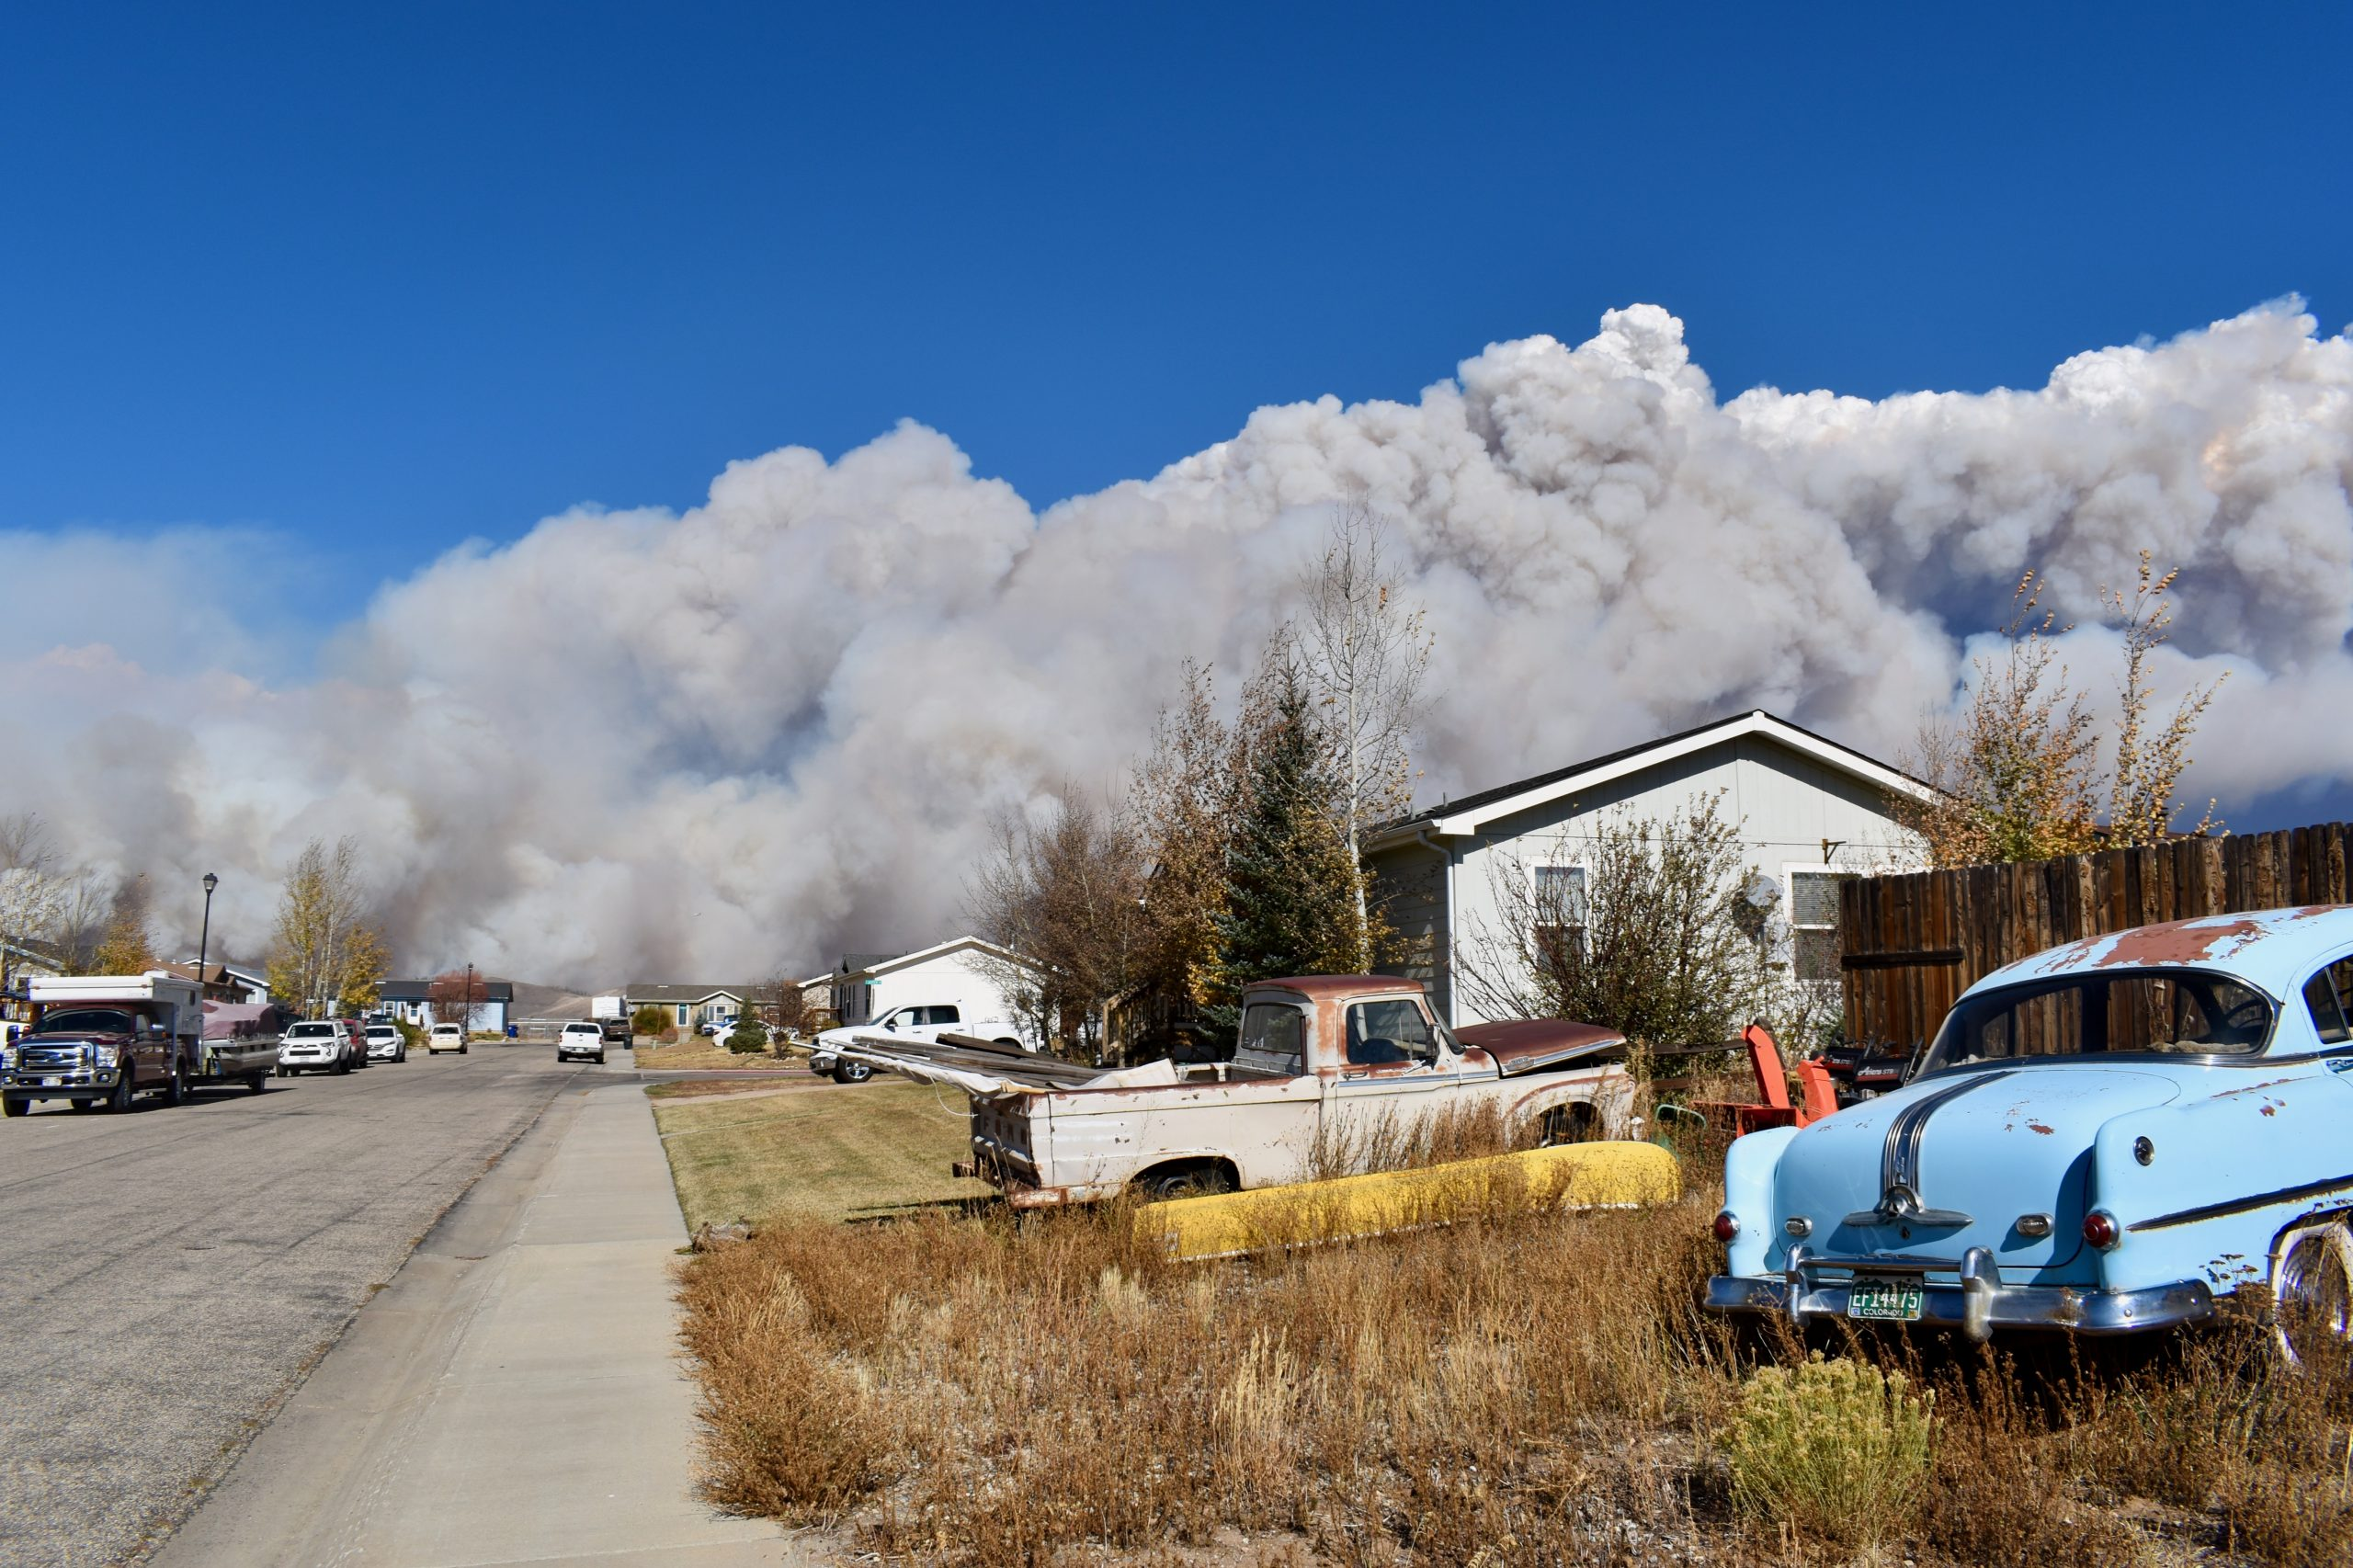 East Troublesome Fire's 'unprecedented' blowup a sign of Colorado's grim climate future